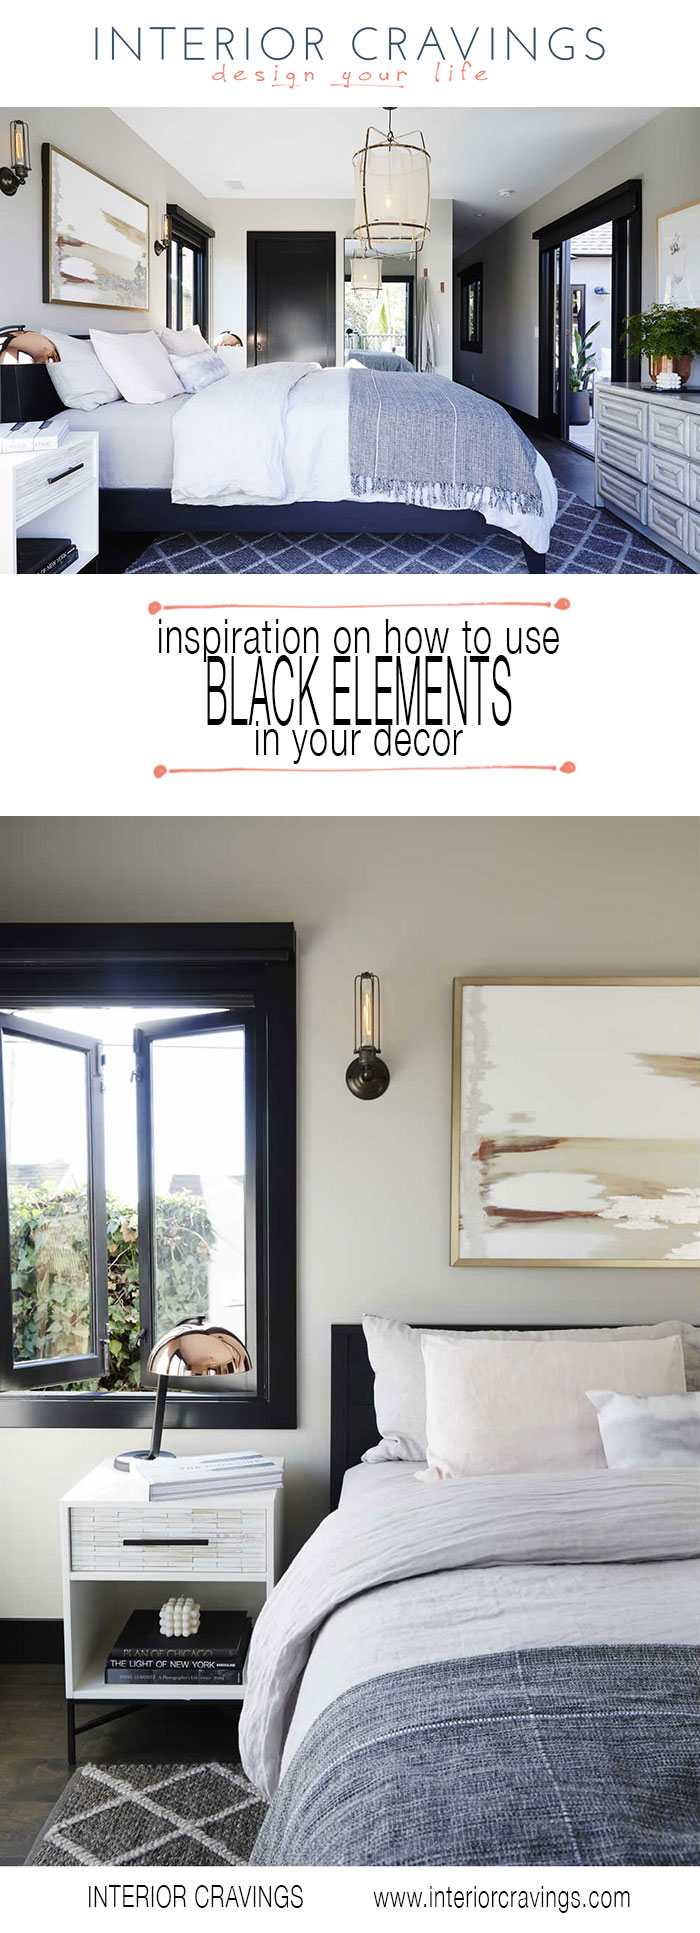 interior cravings how to use black elements in your decor bedroom showcase